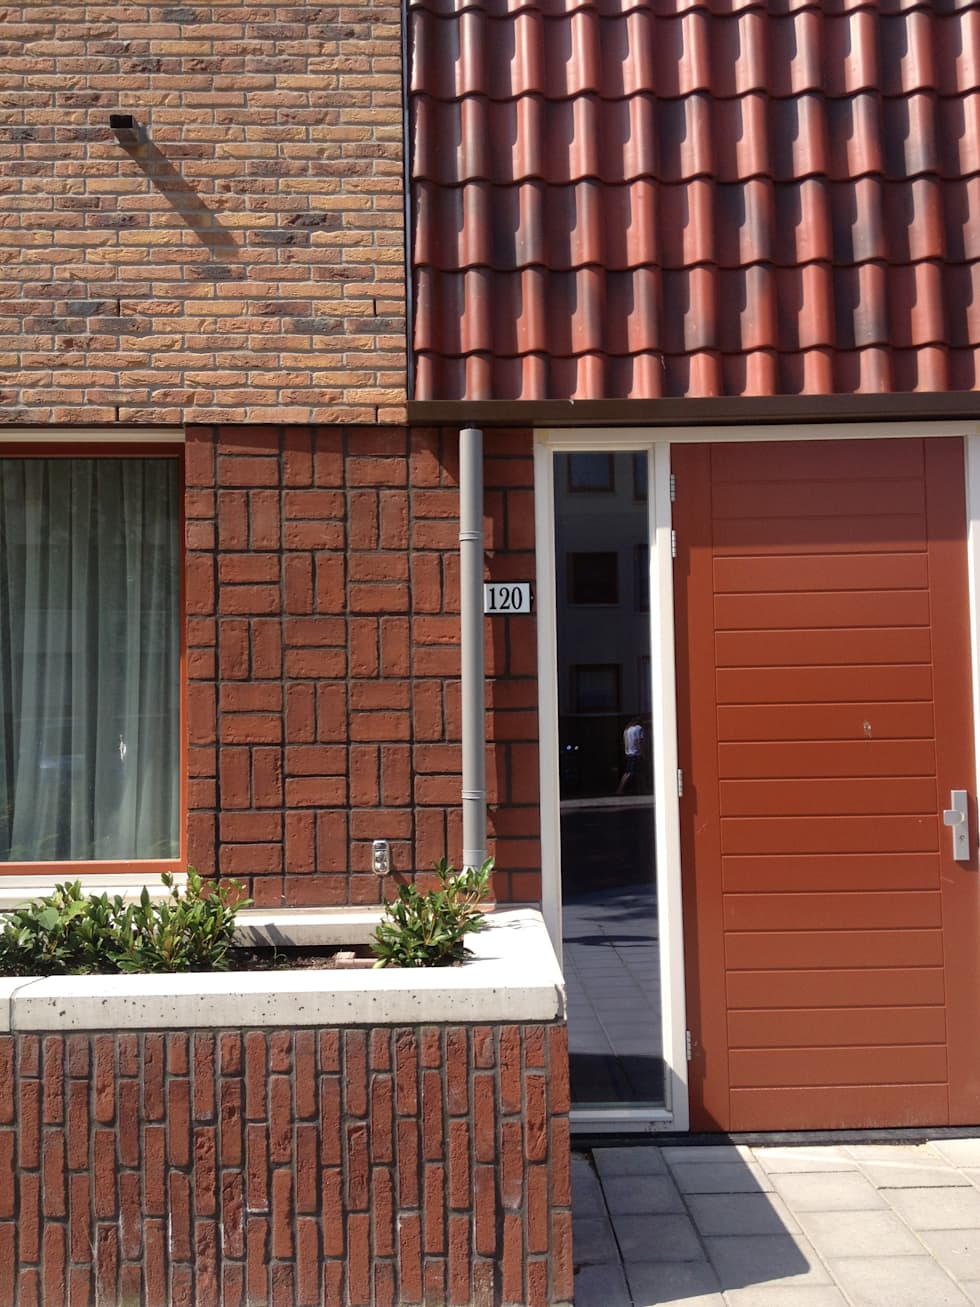 One of the entrances, used for the protected housing: moderne Huizen door PAA  Pattynama Ahaus Architectuur